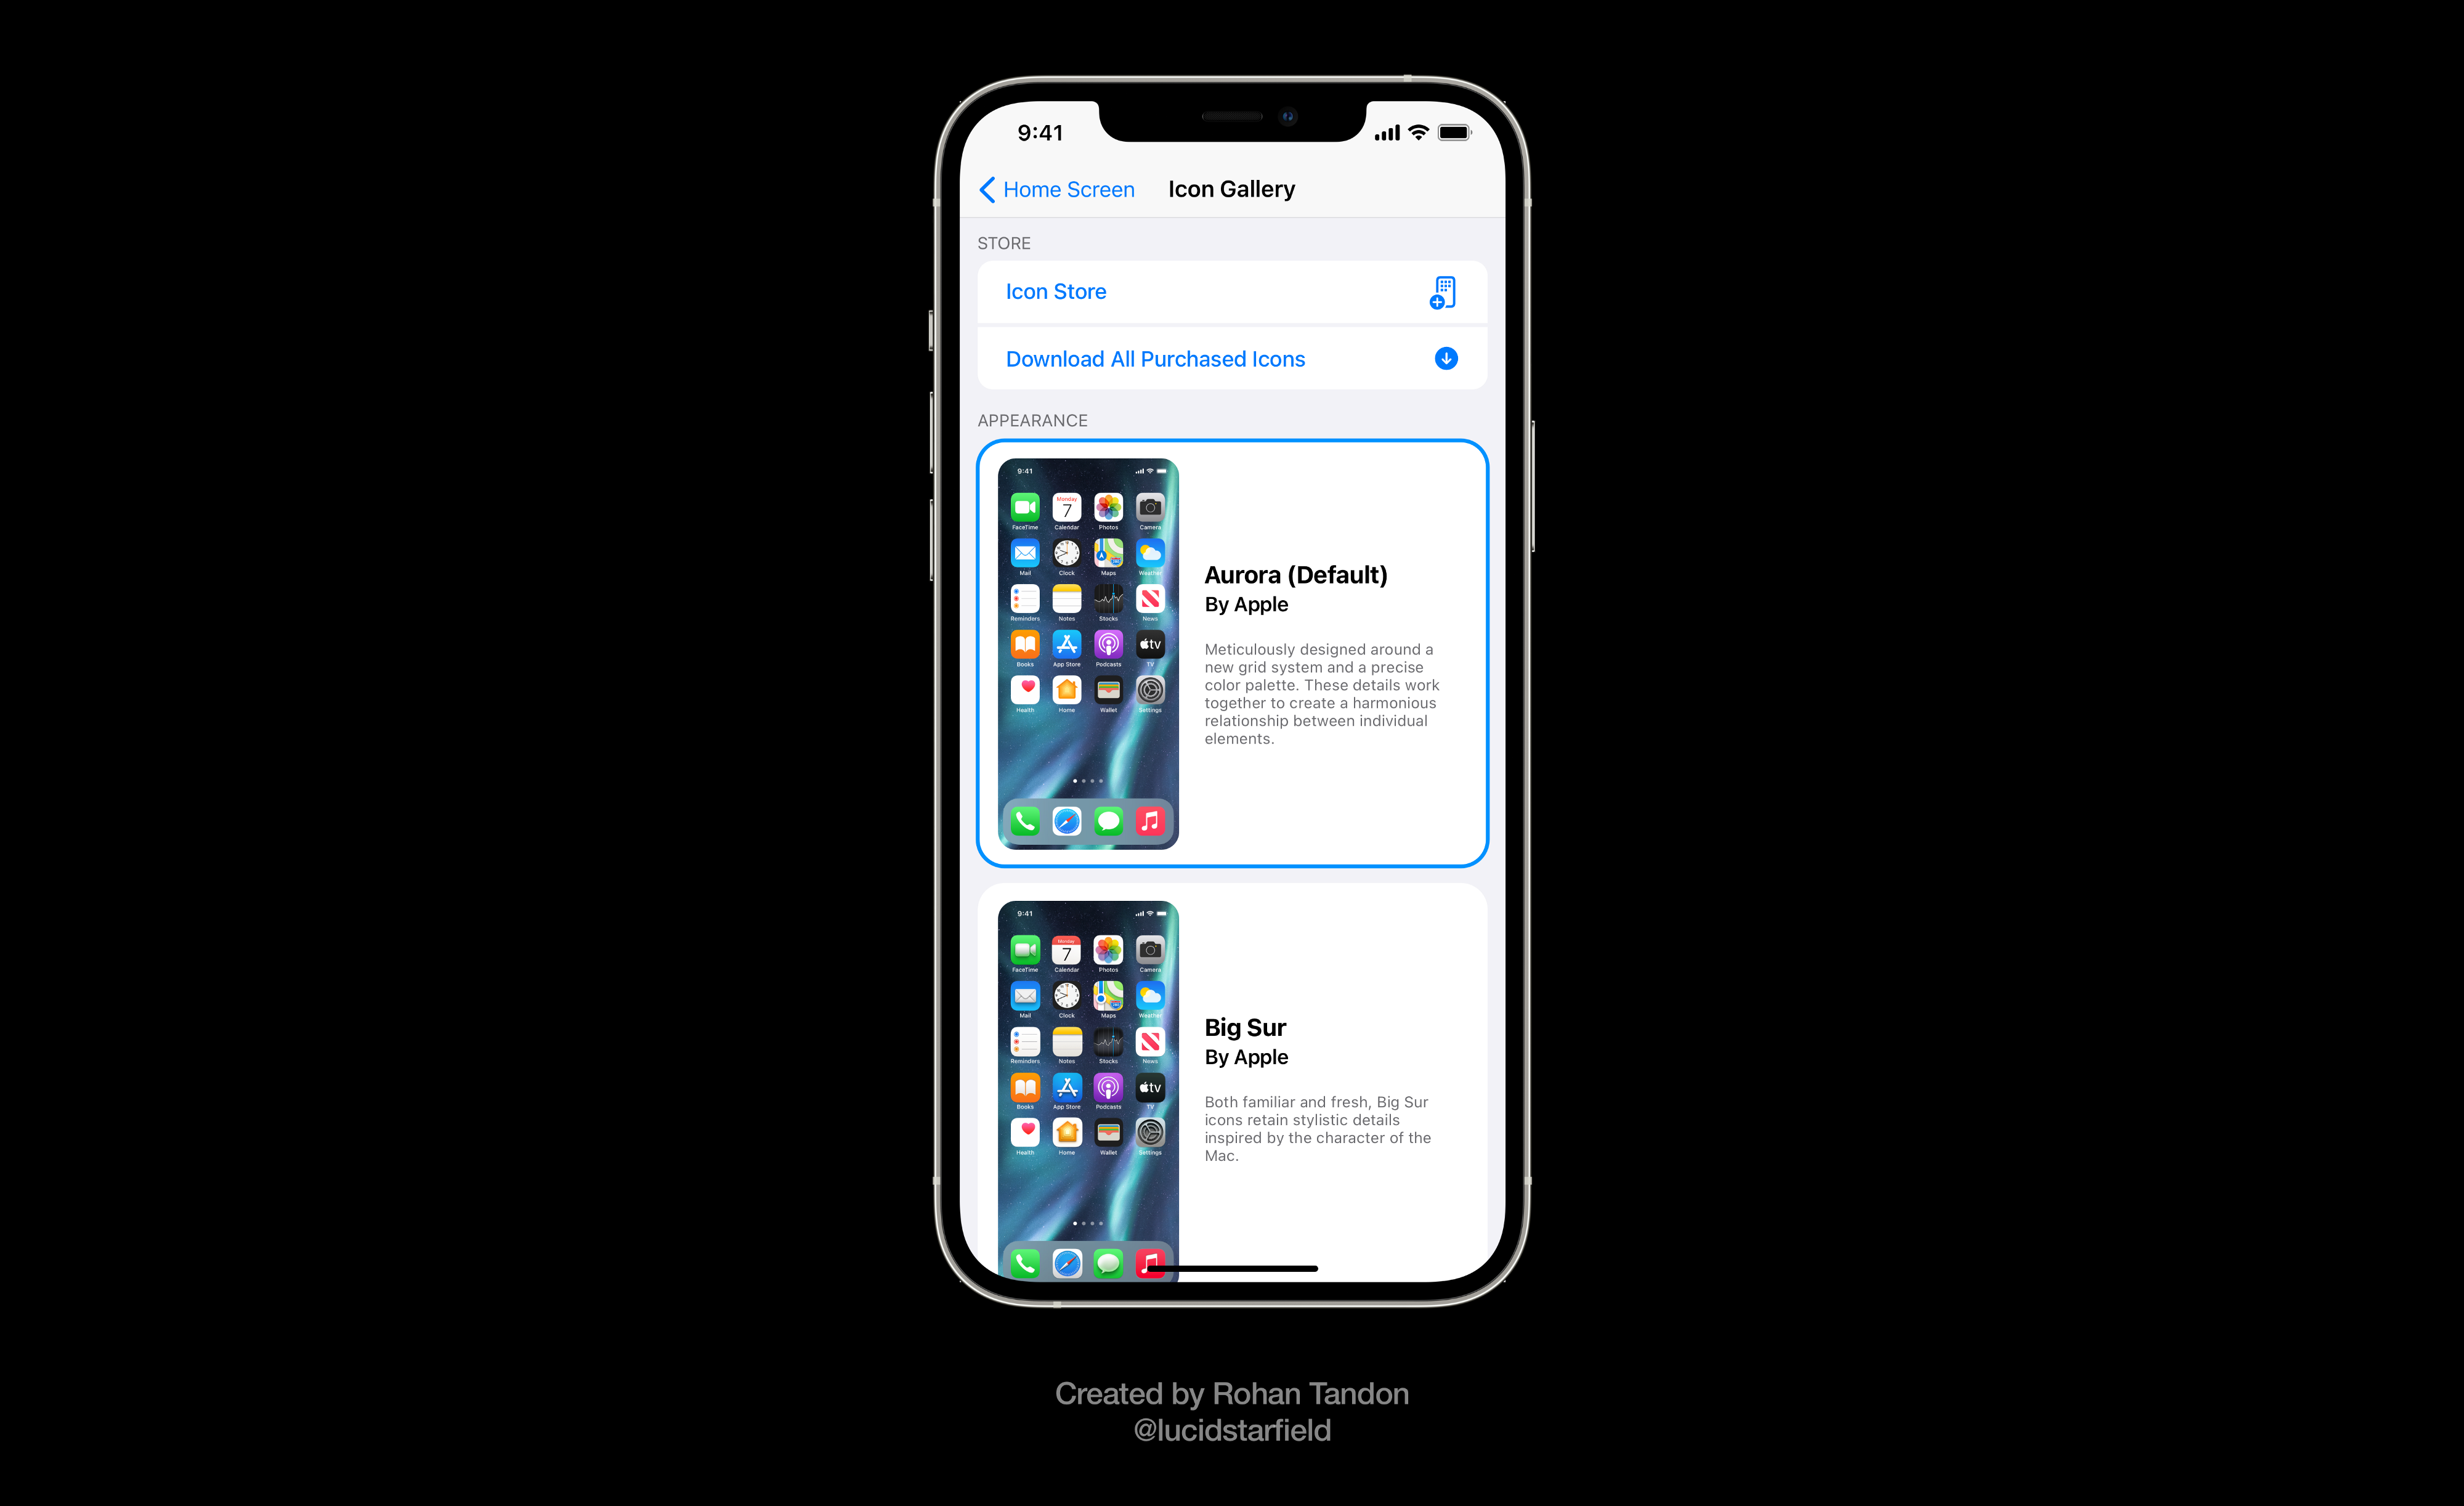 iOS 15 Aurora imagines Icon Gallery in the Settings to change app icons and download curated third-party icons from the App Store.